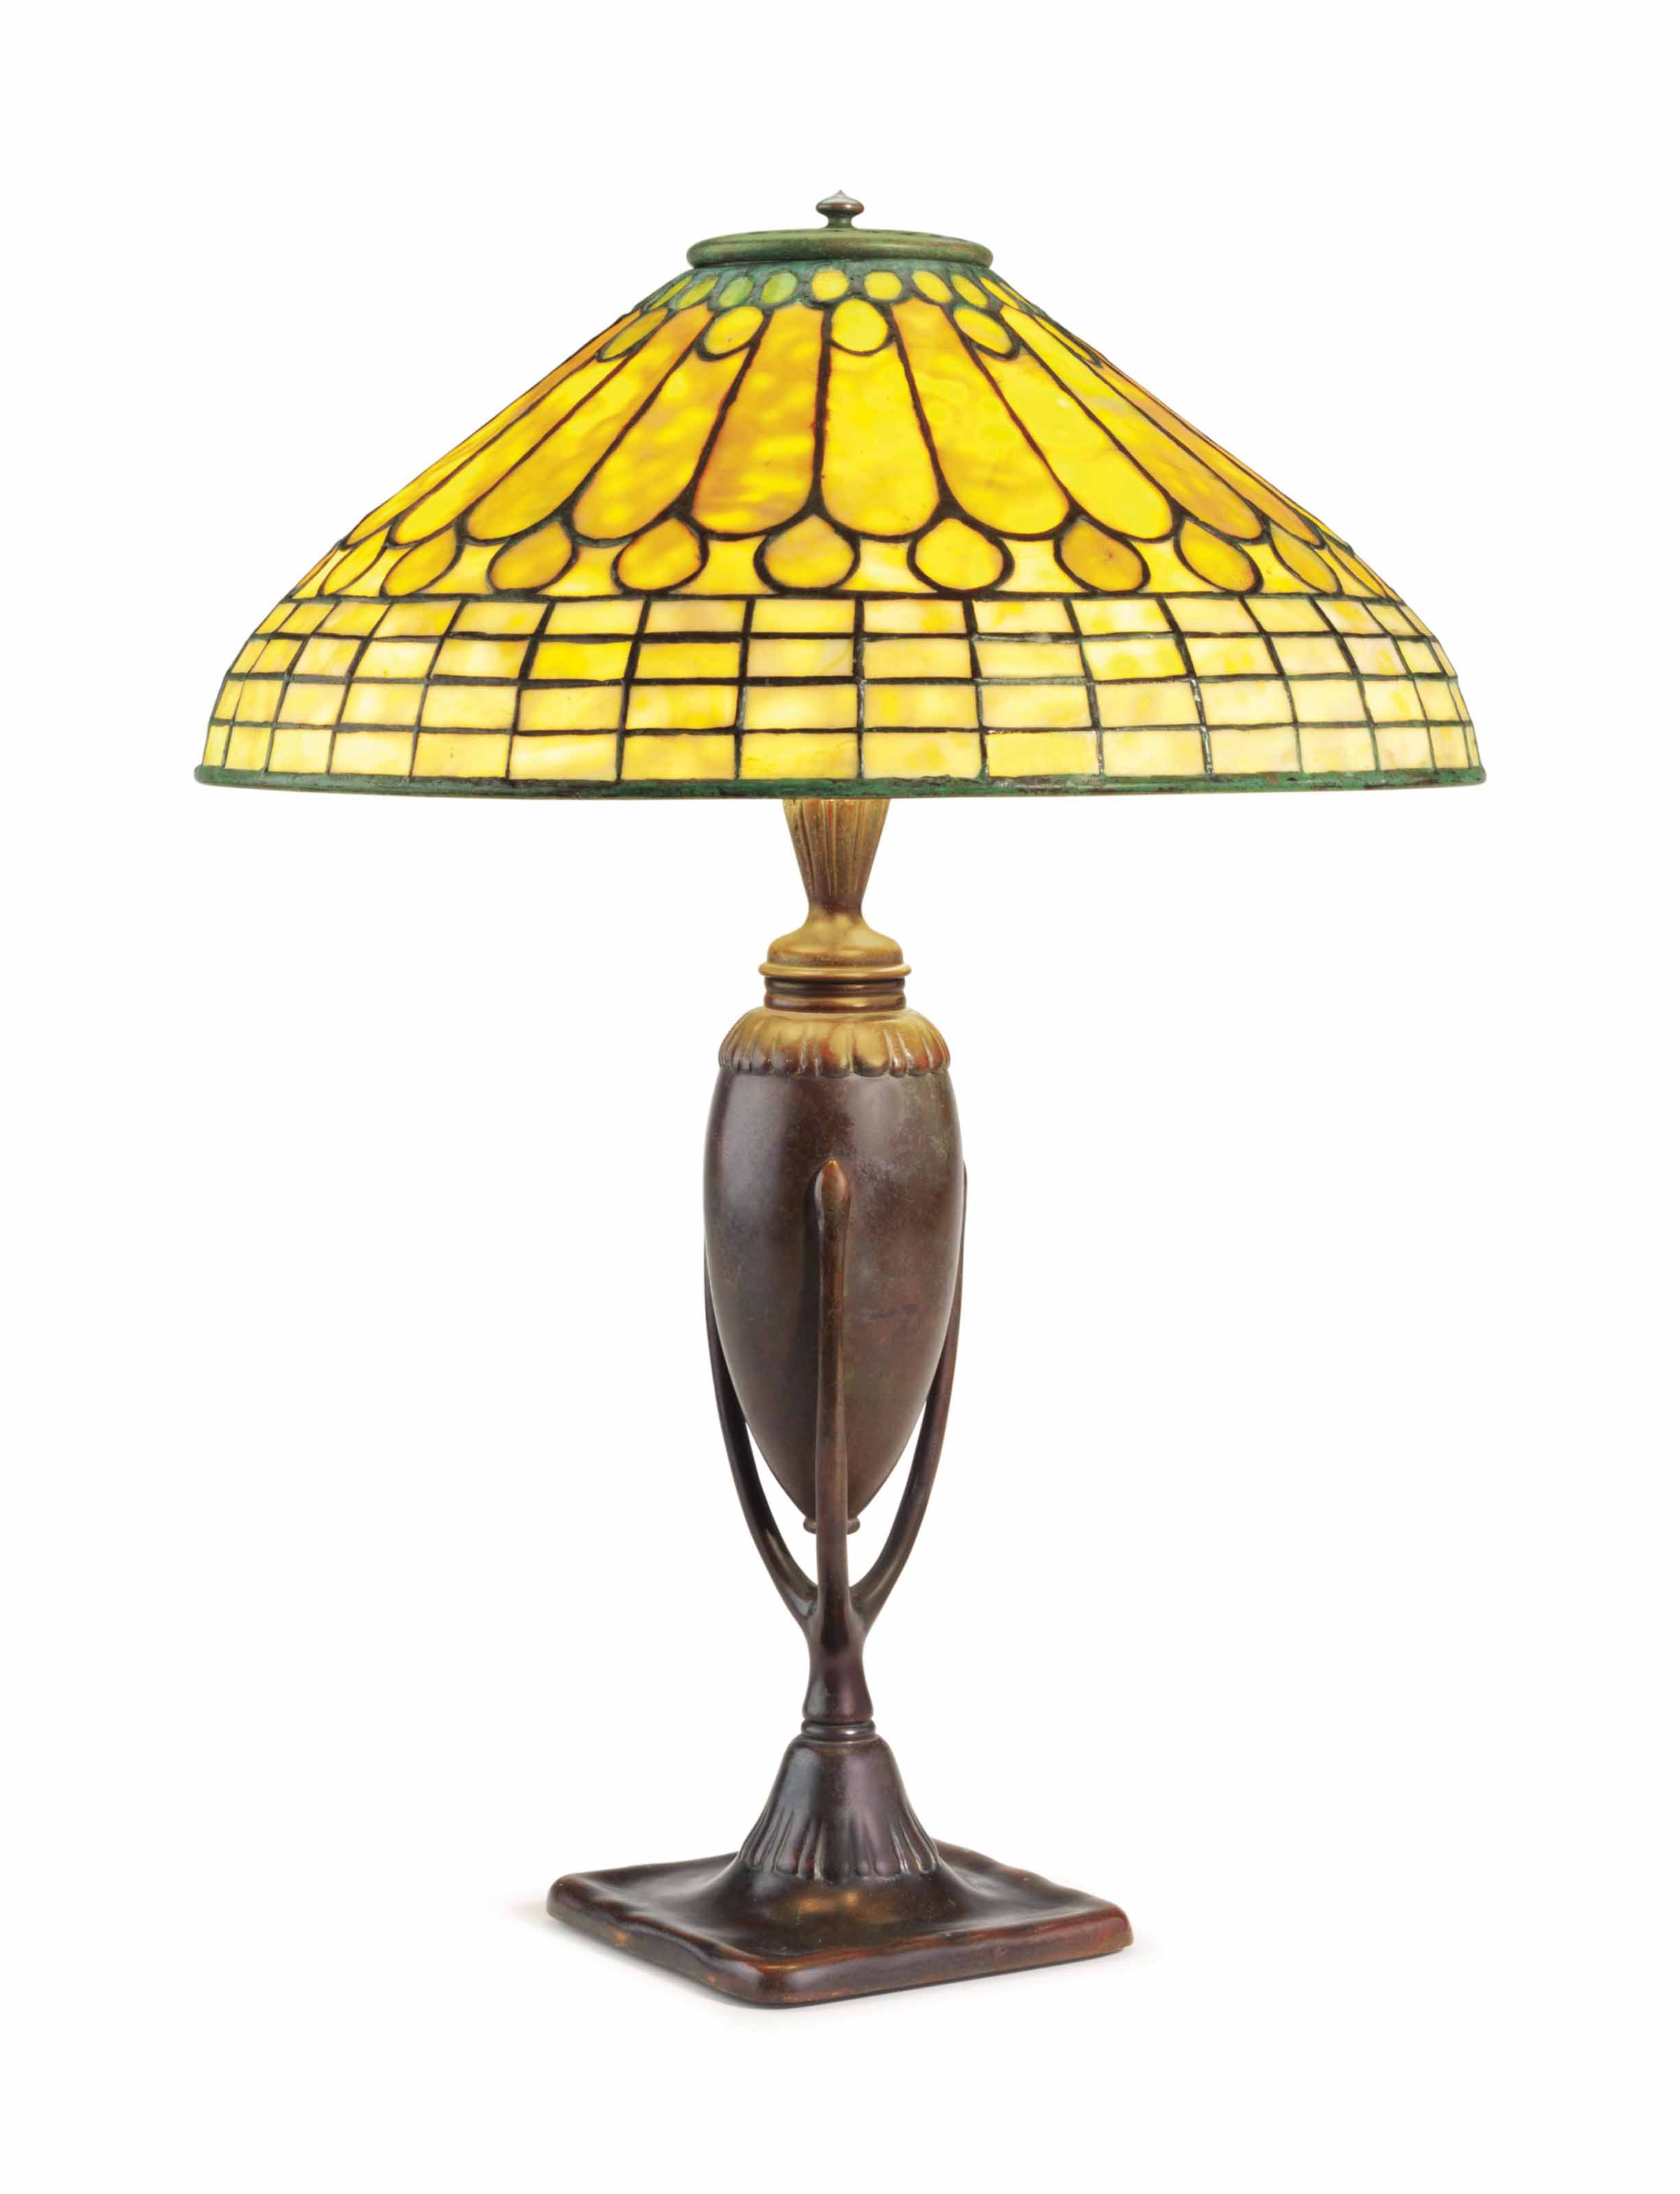 A PATINATED BRONZE TABLE LAMP